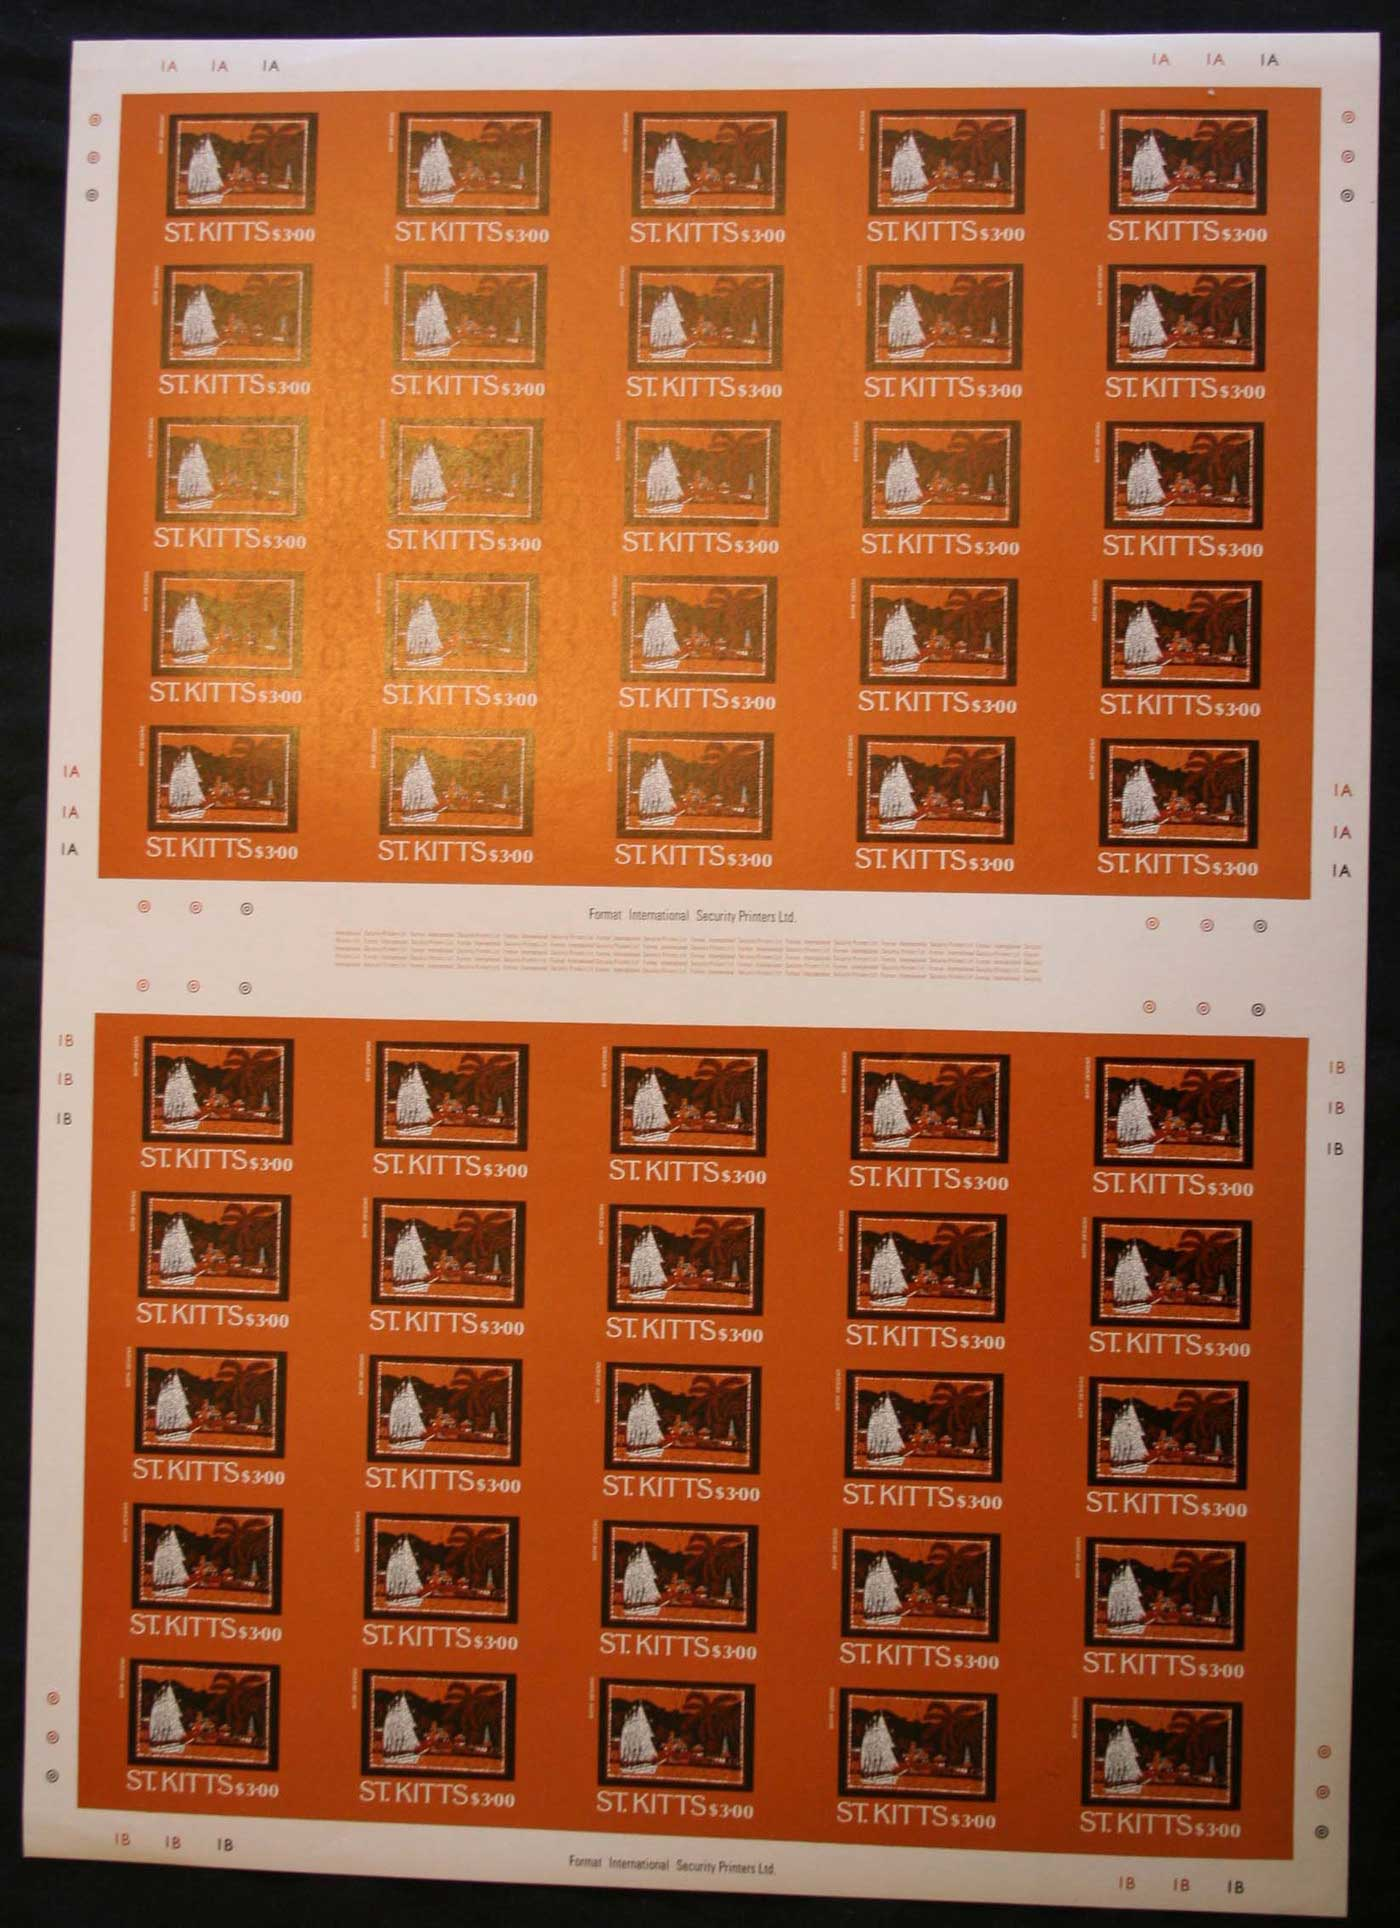 St Kitts 1985 Batik Art IMPERFORATE sheets, 15c, 40c, 60c, $3, issued 2/6/85, ex Format International Liquidation sale, late 198